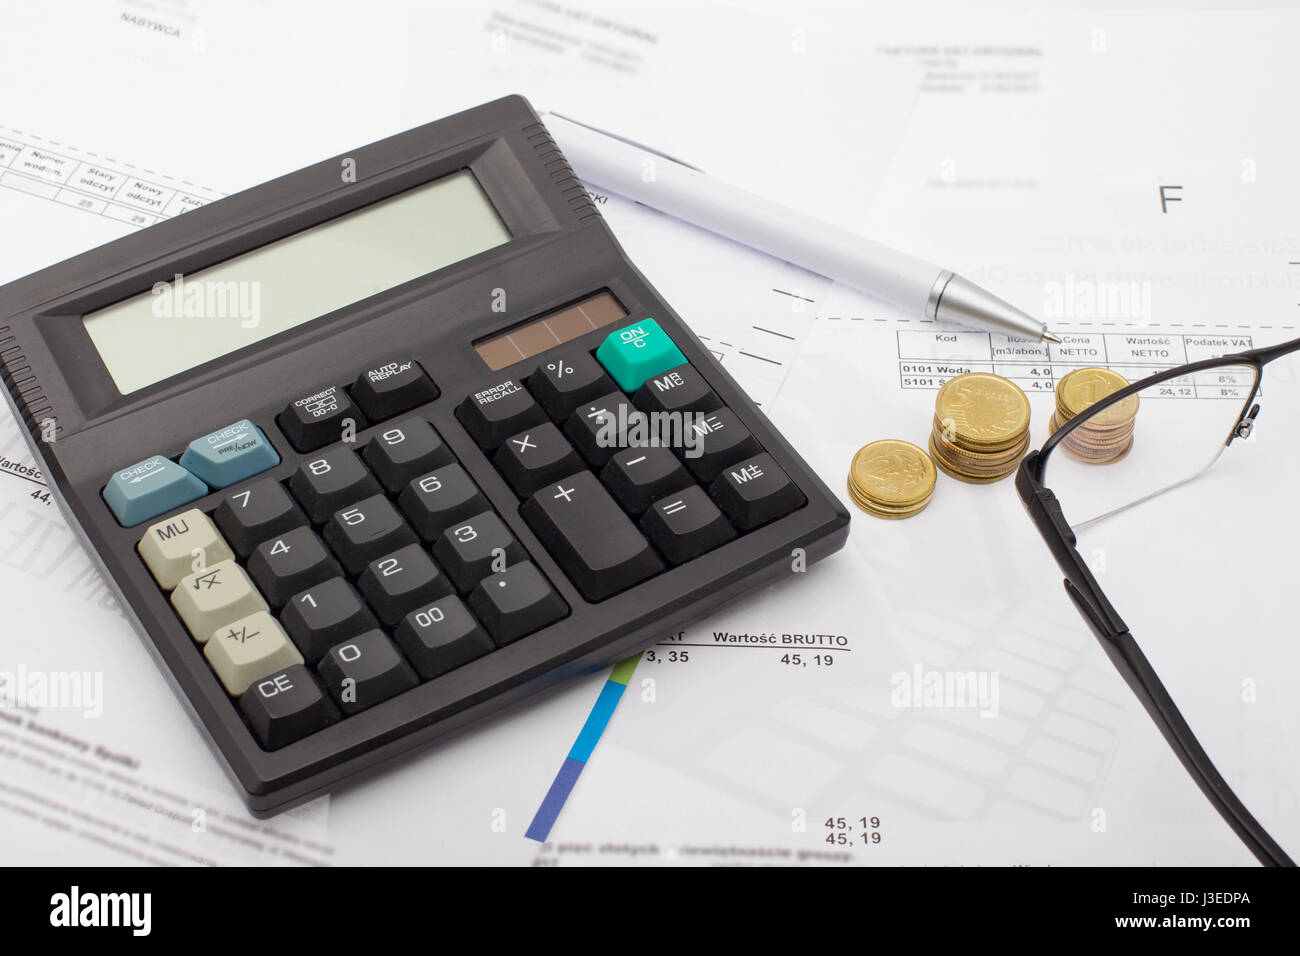 Financial accounting - business. Calculating household bills, household savings - Stock Image